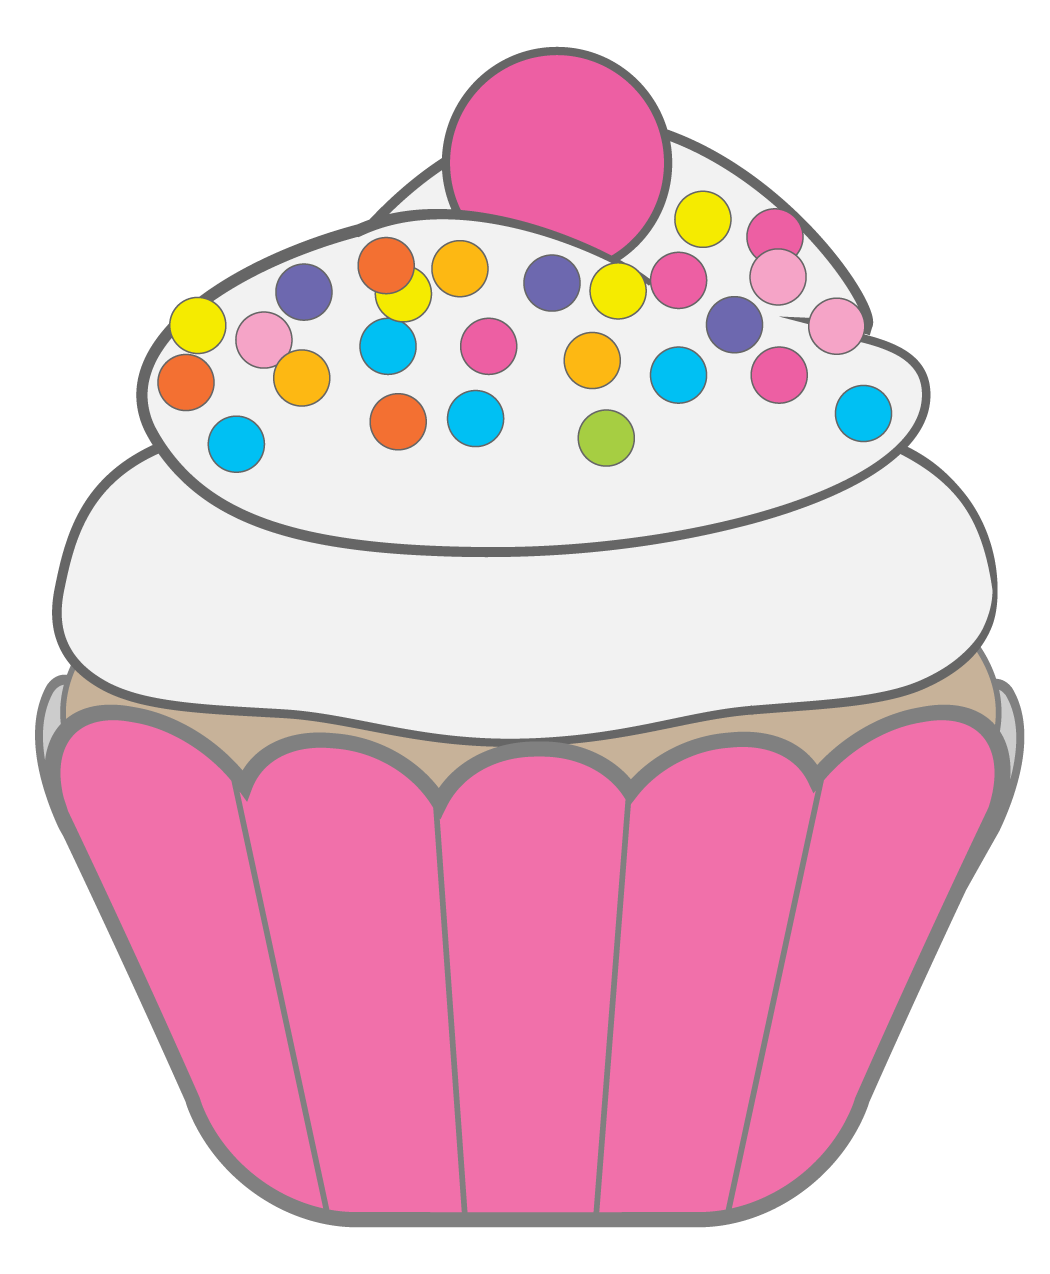 Muffin clipart giant cupcake, Muffin giant cupcake.